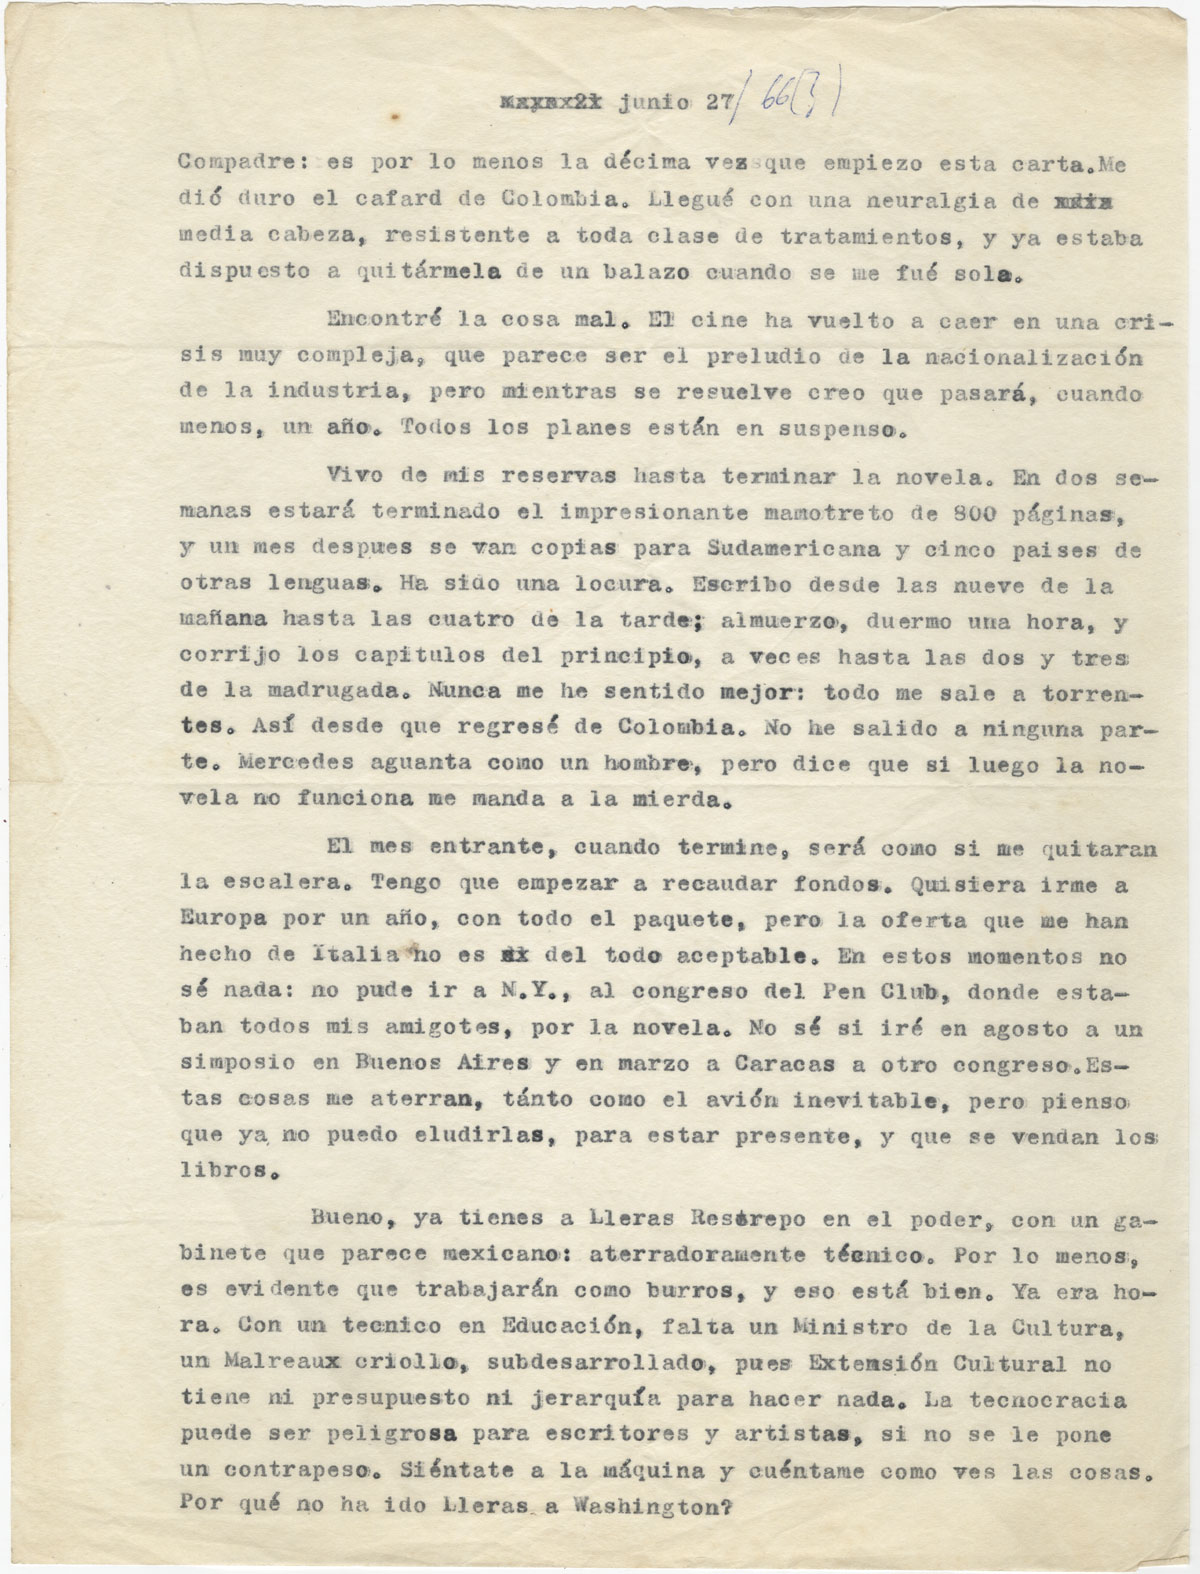 A letter from Gabriel García Márquez to his friend and fellow writer and journalist Plinio Apuleyo Mendoza, June 27 [1966] (page 1).